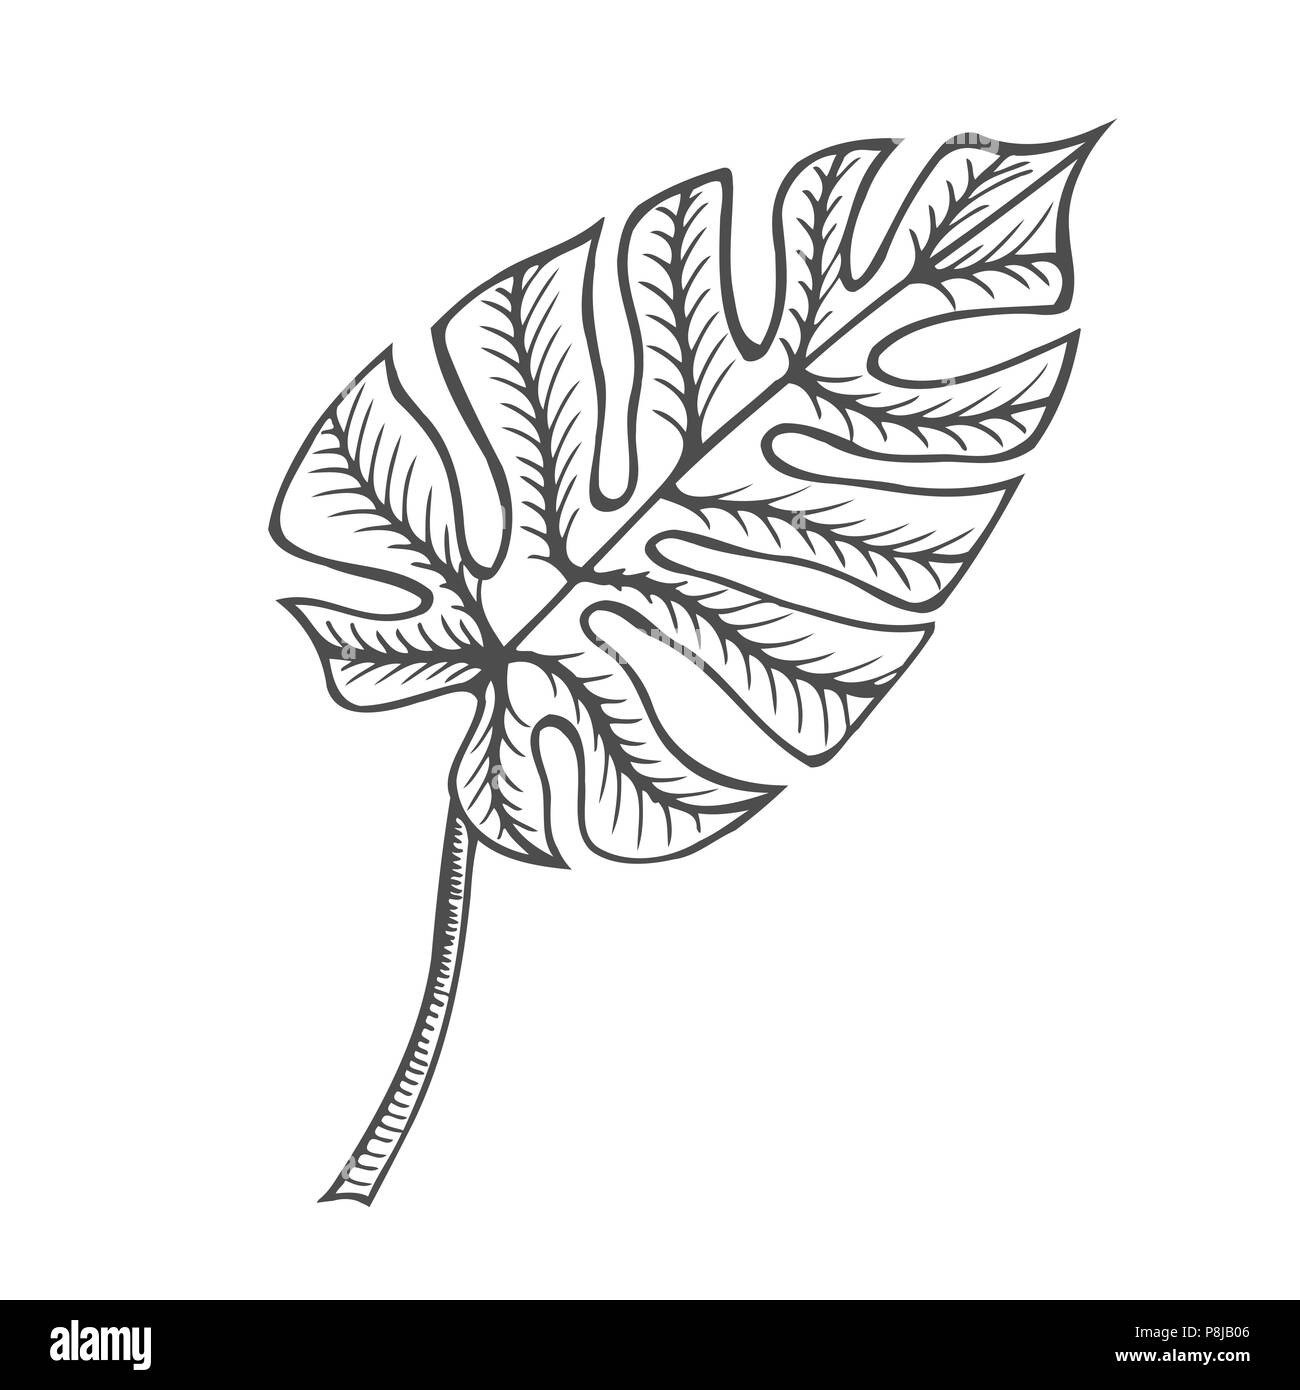 Get Inspired For Leaf Line Art Vector